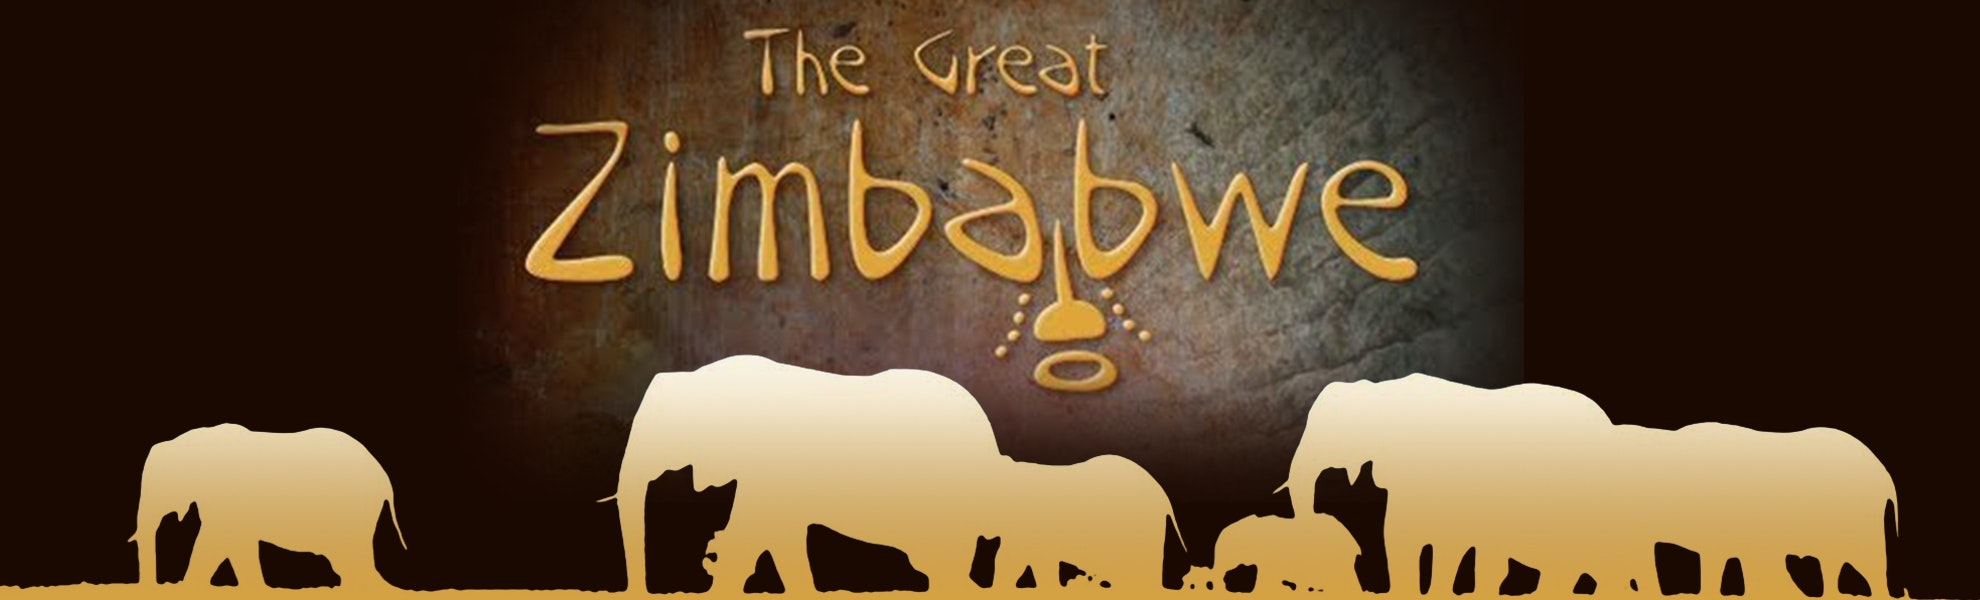 The Great Zimbabwe Preorder